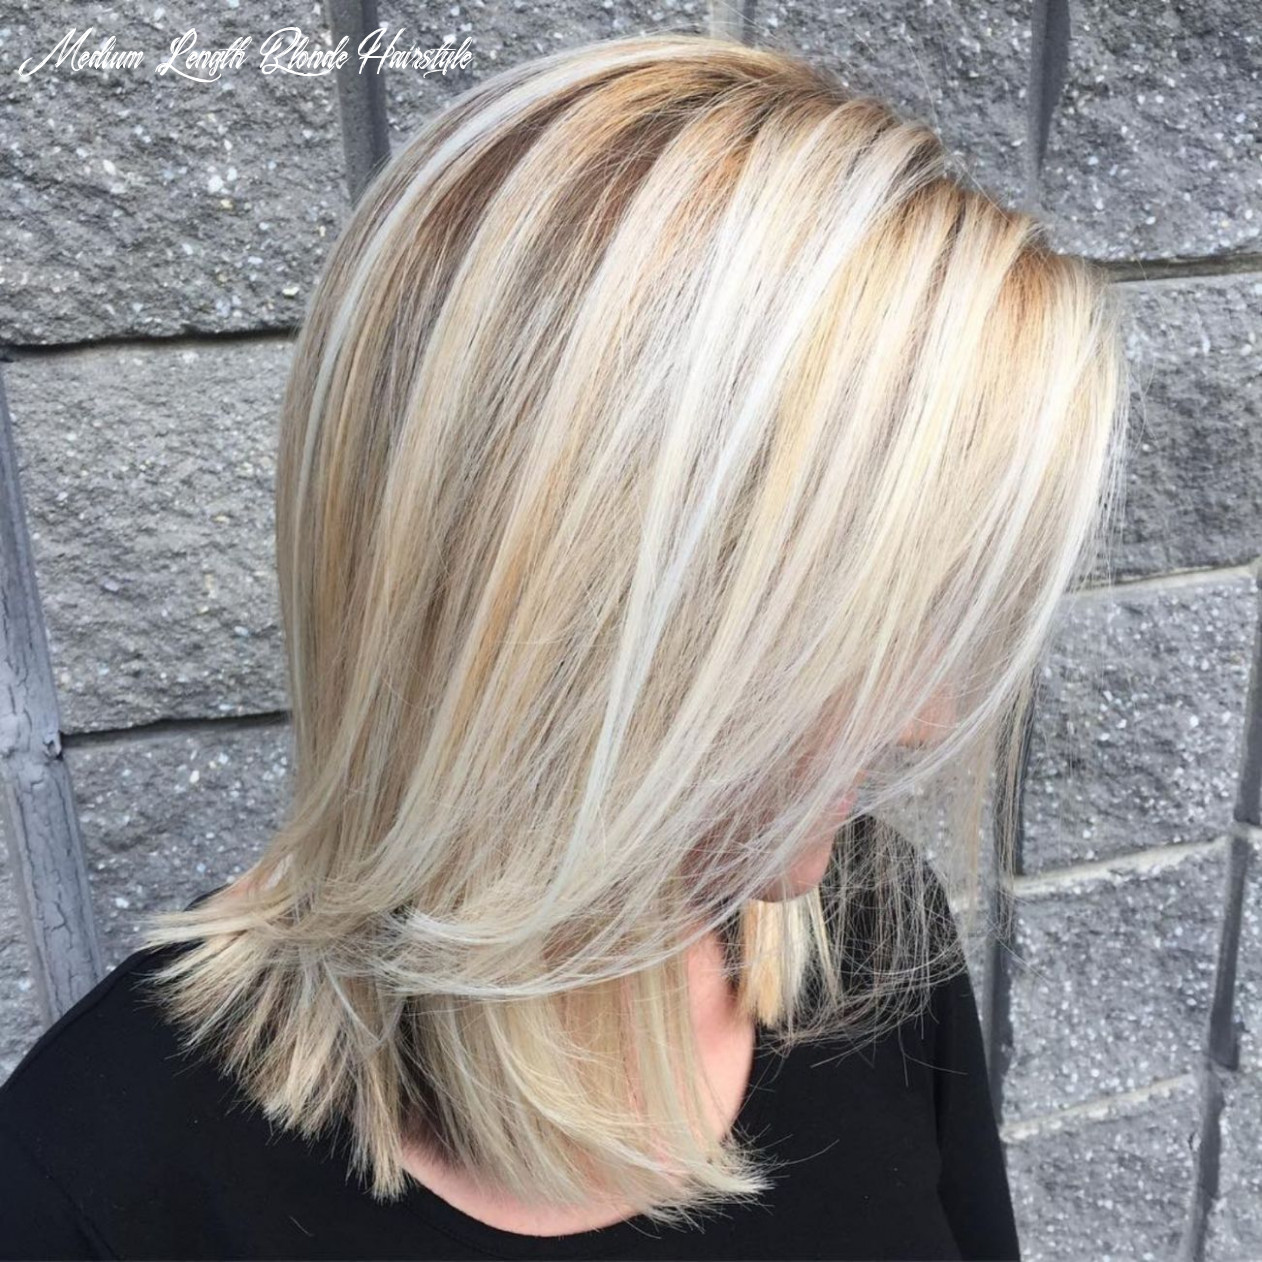 Shoulder length blonde hairstyle #blondehairstylesforwomen